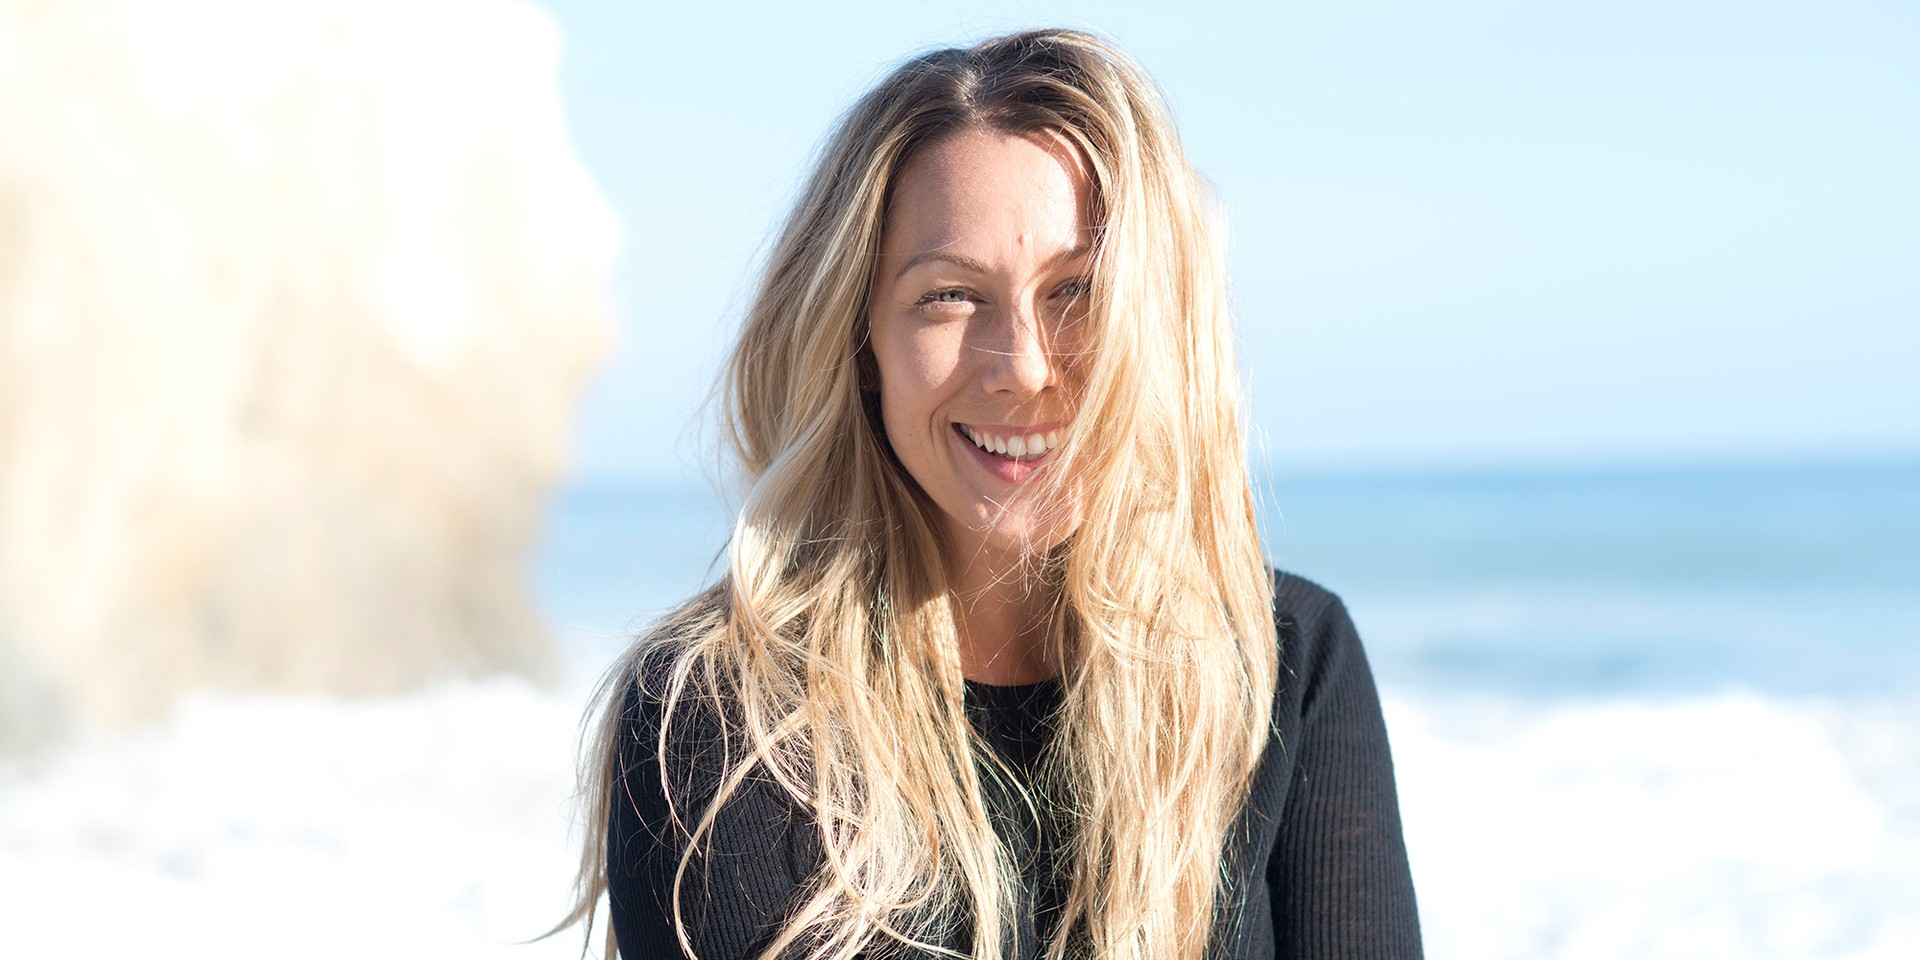 Colbie Caillat's concert in Singapore has been cancelled